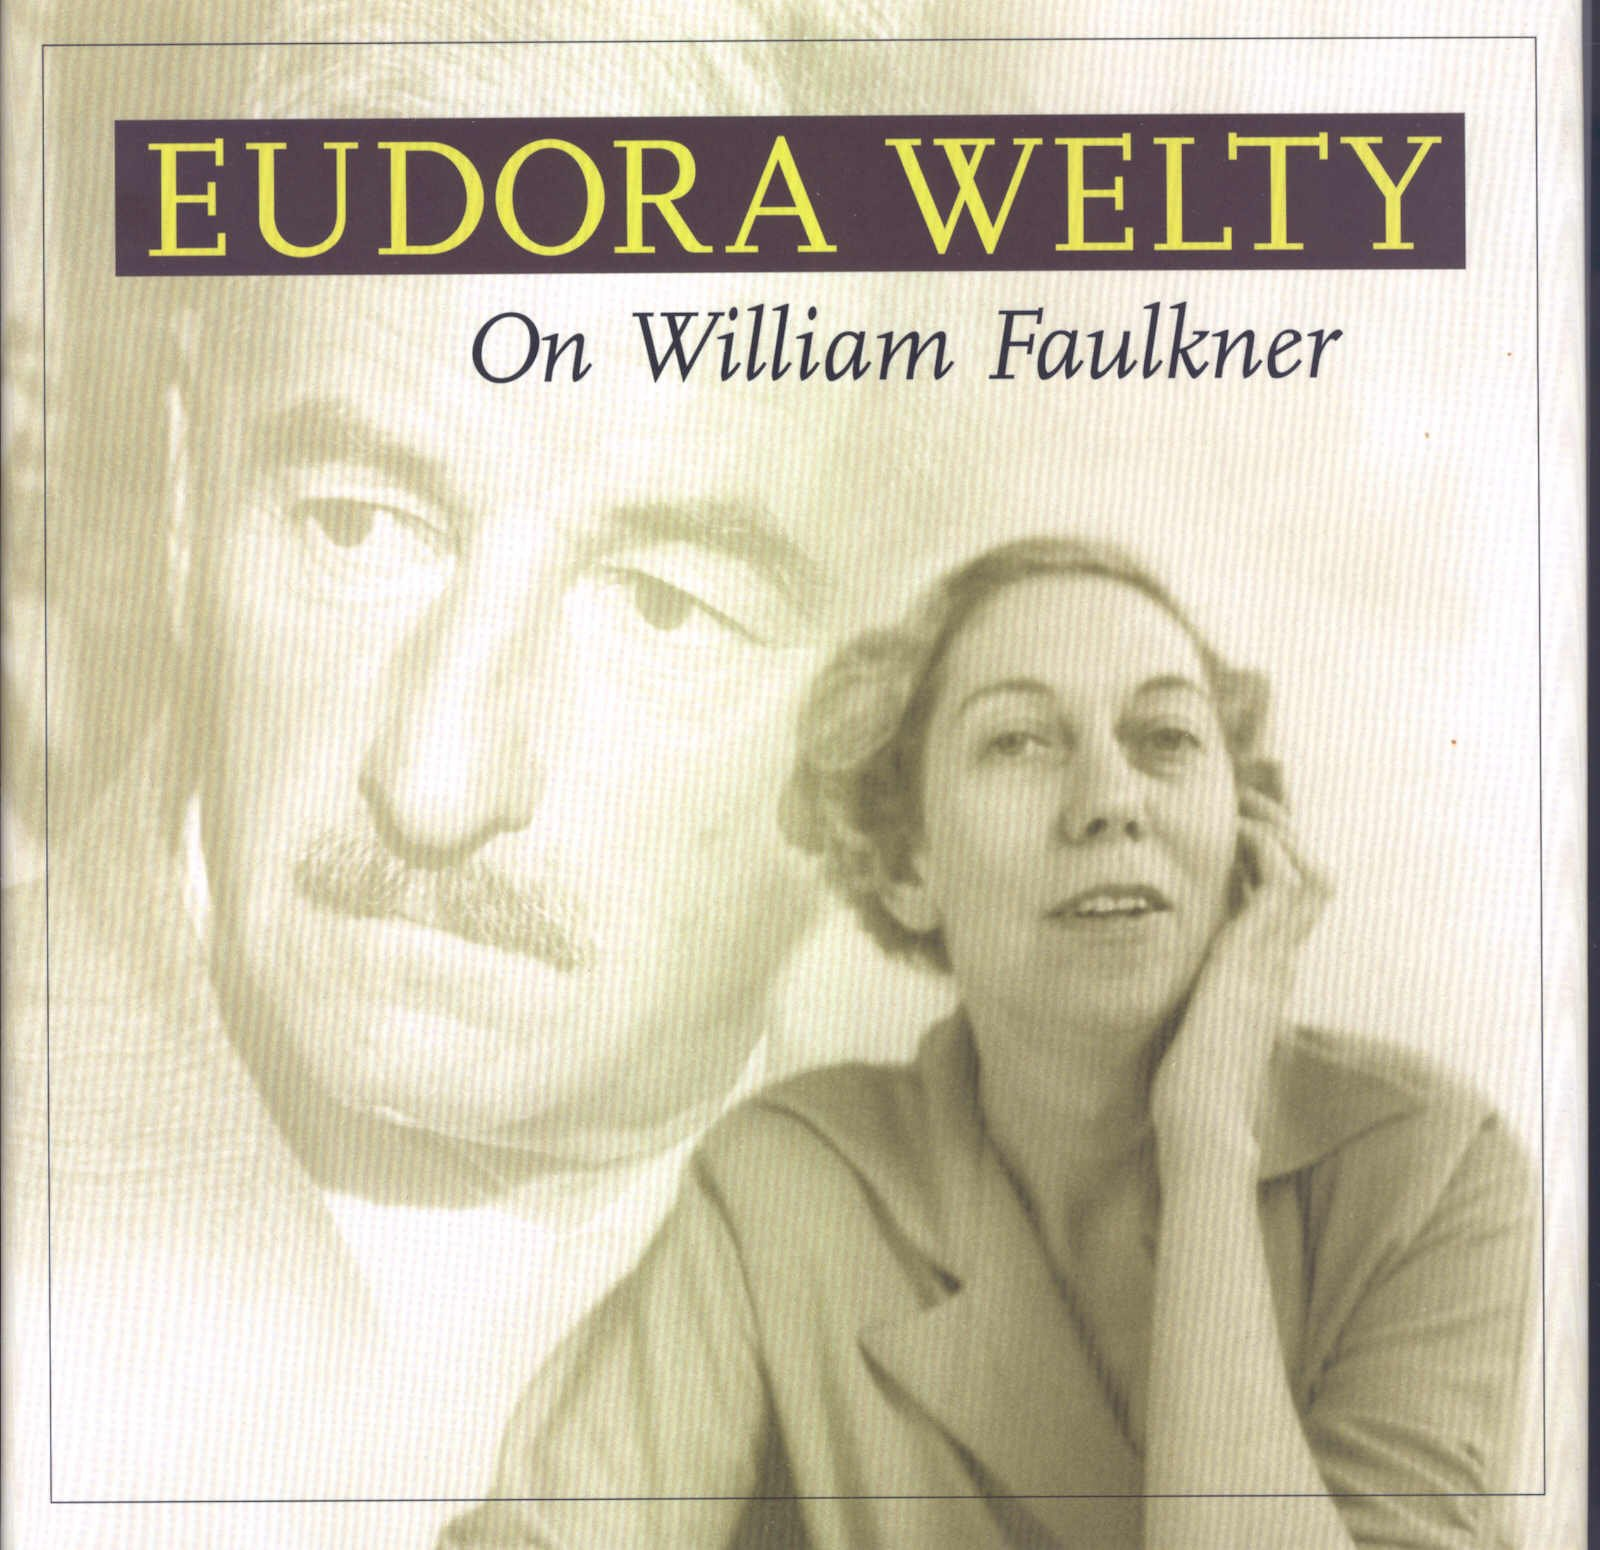 com on william faulkner eudora welty com on william faulkner 9781578065707 eudora welty noel polk books